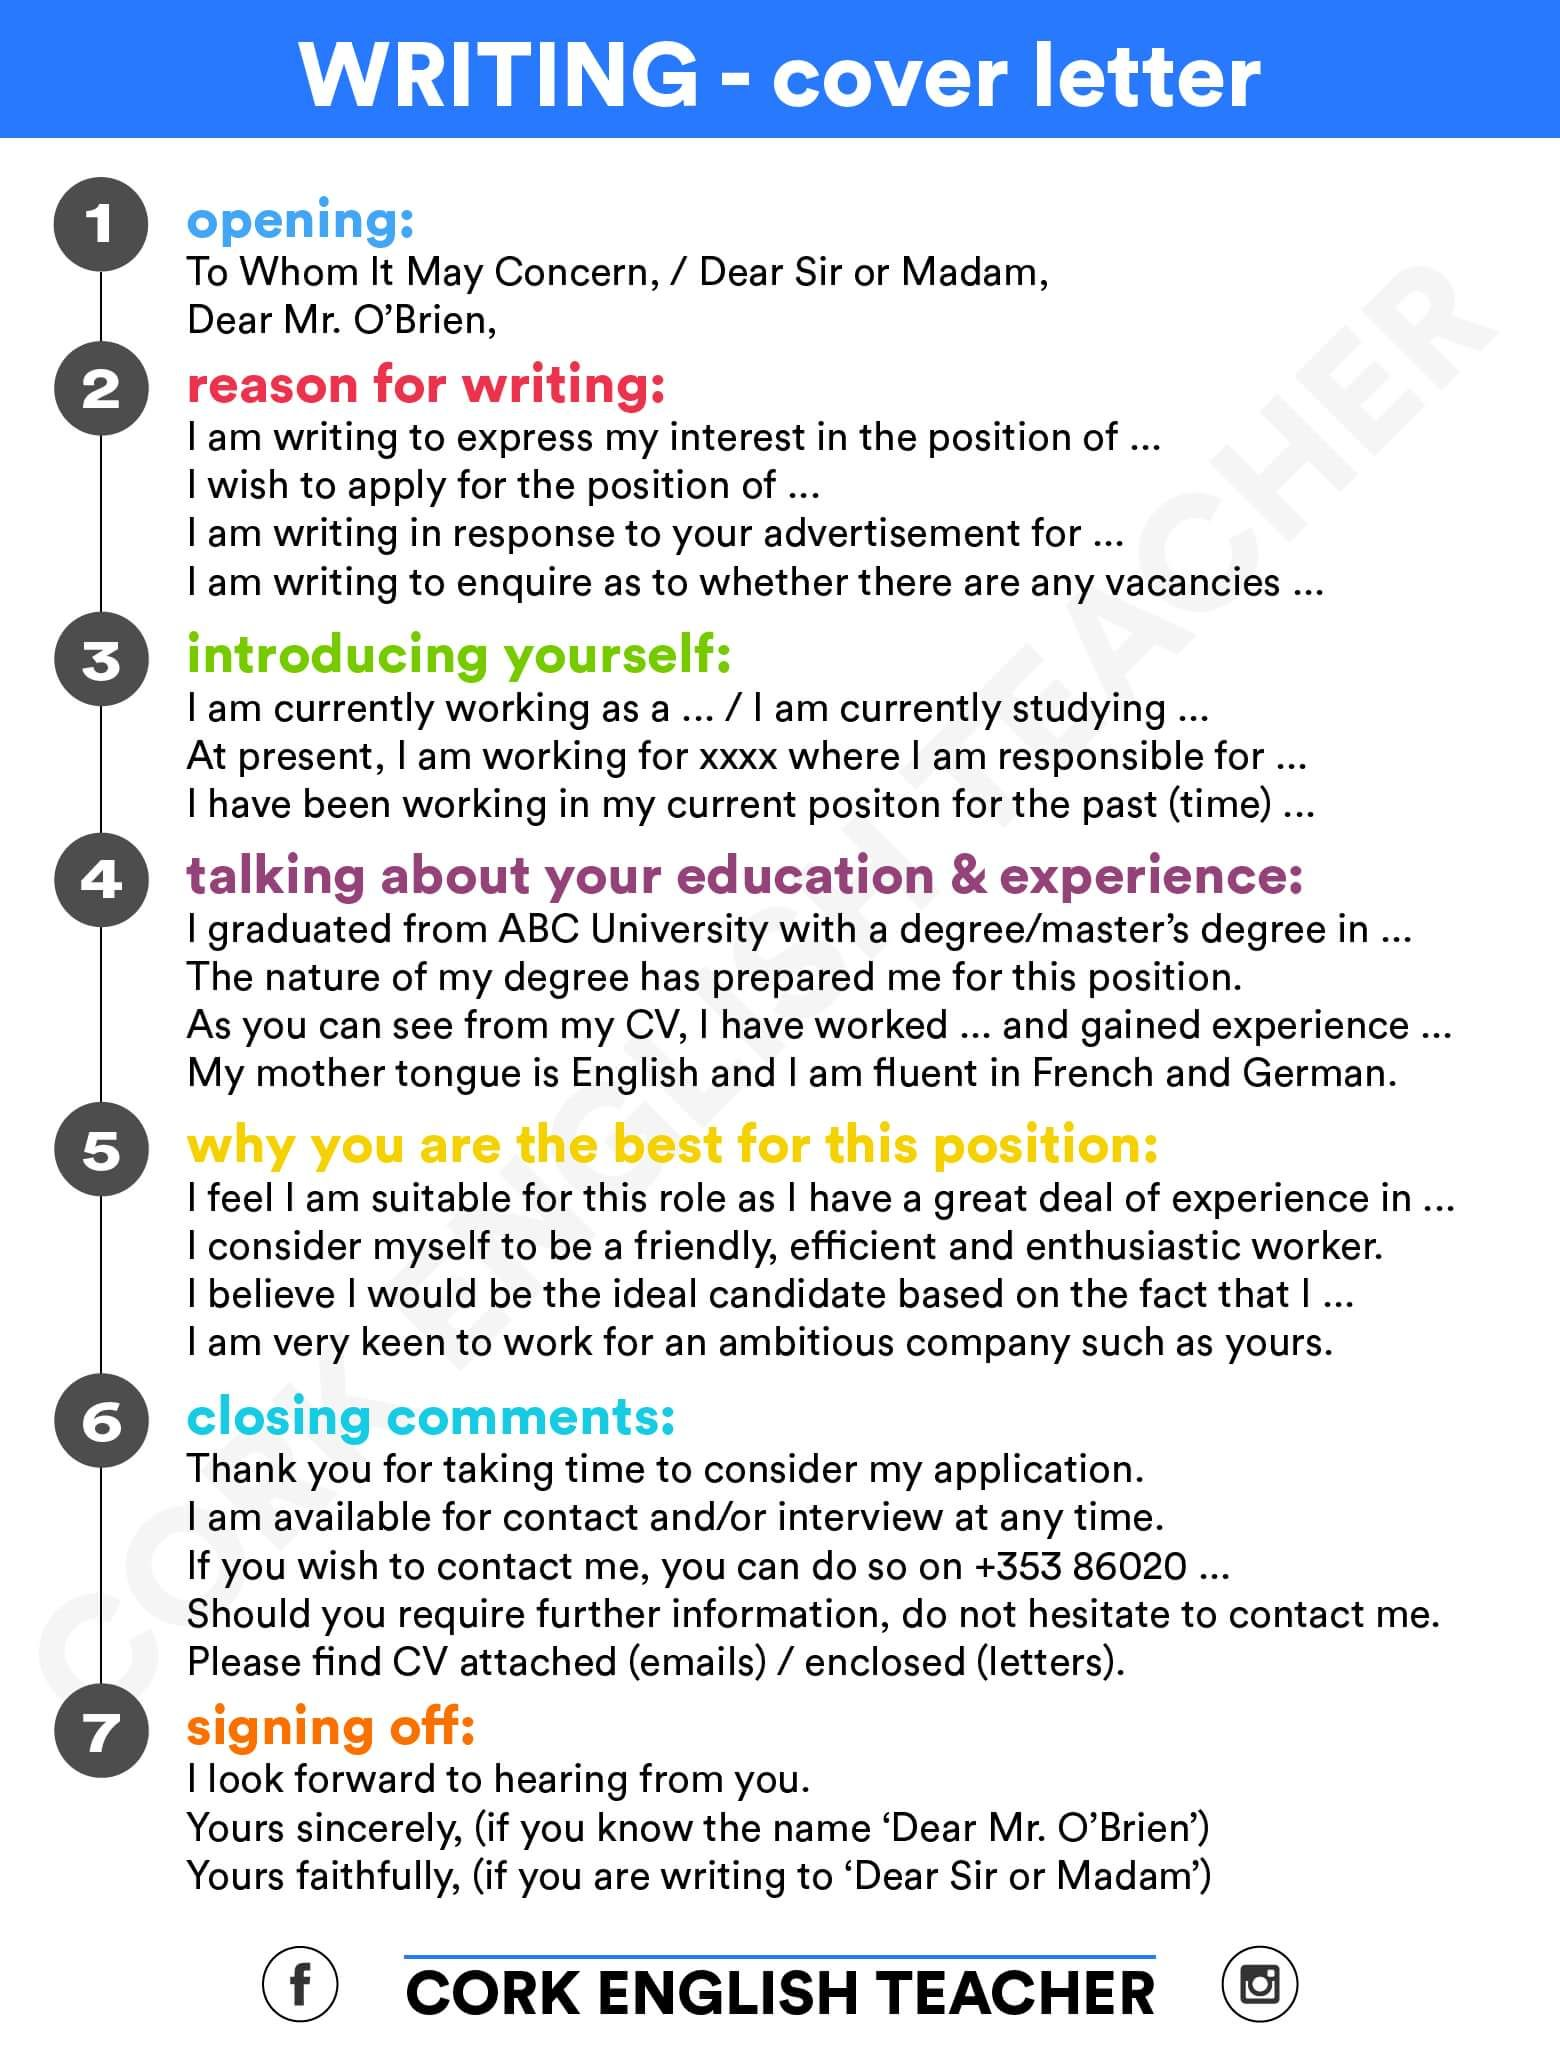 Pin by kamalgis on writing cover letter | English writing